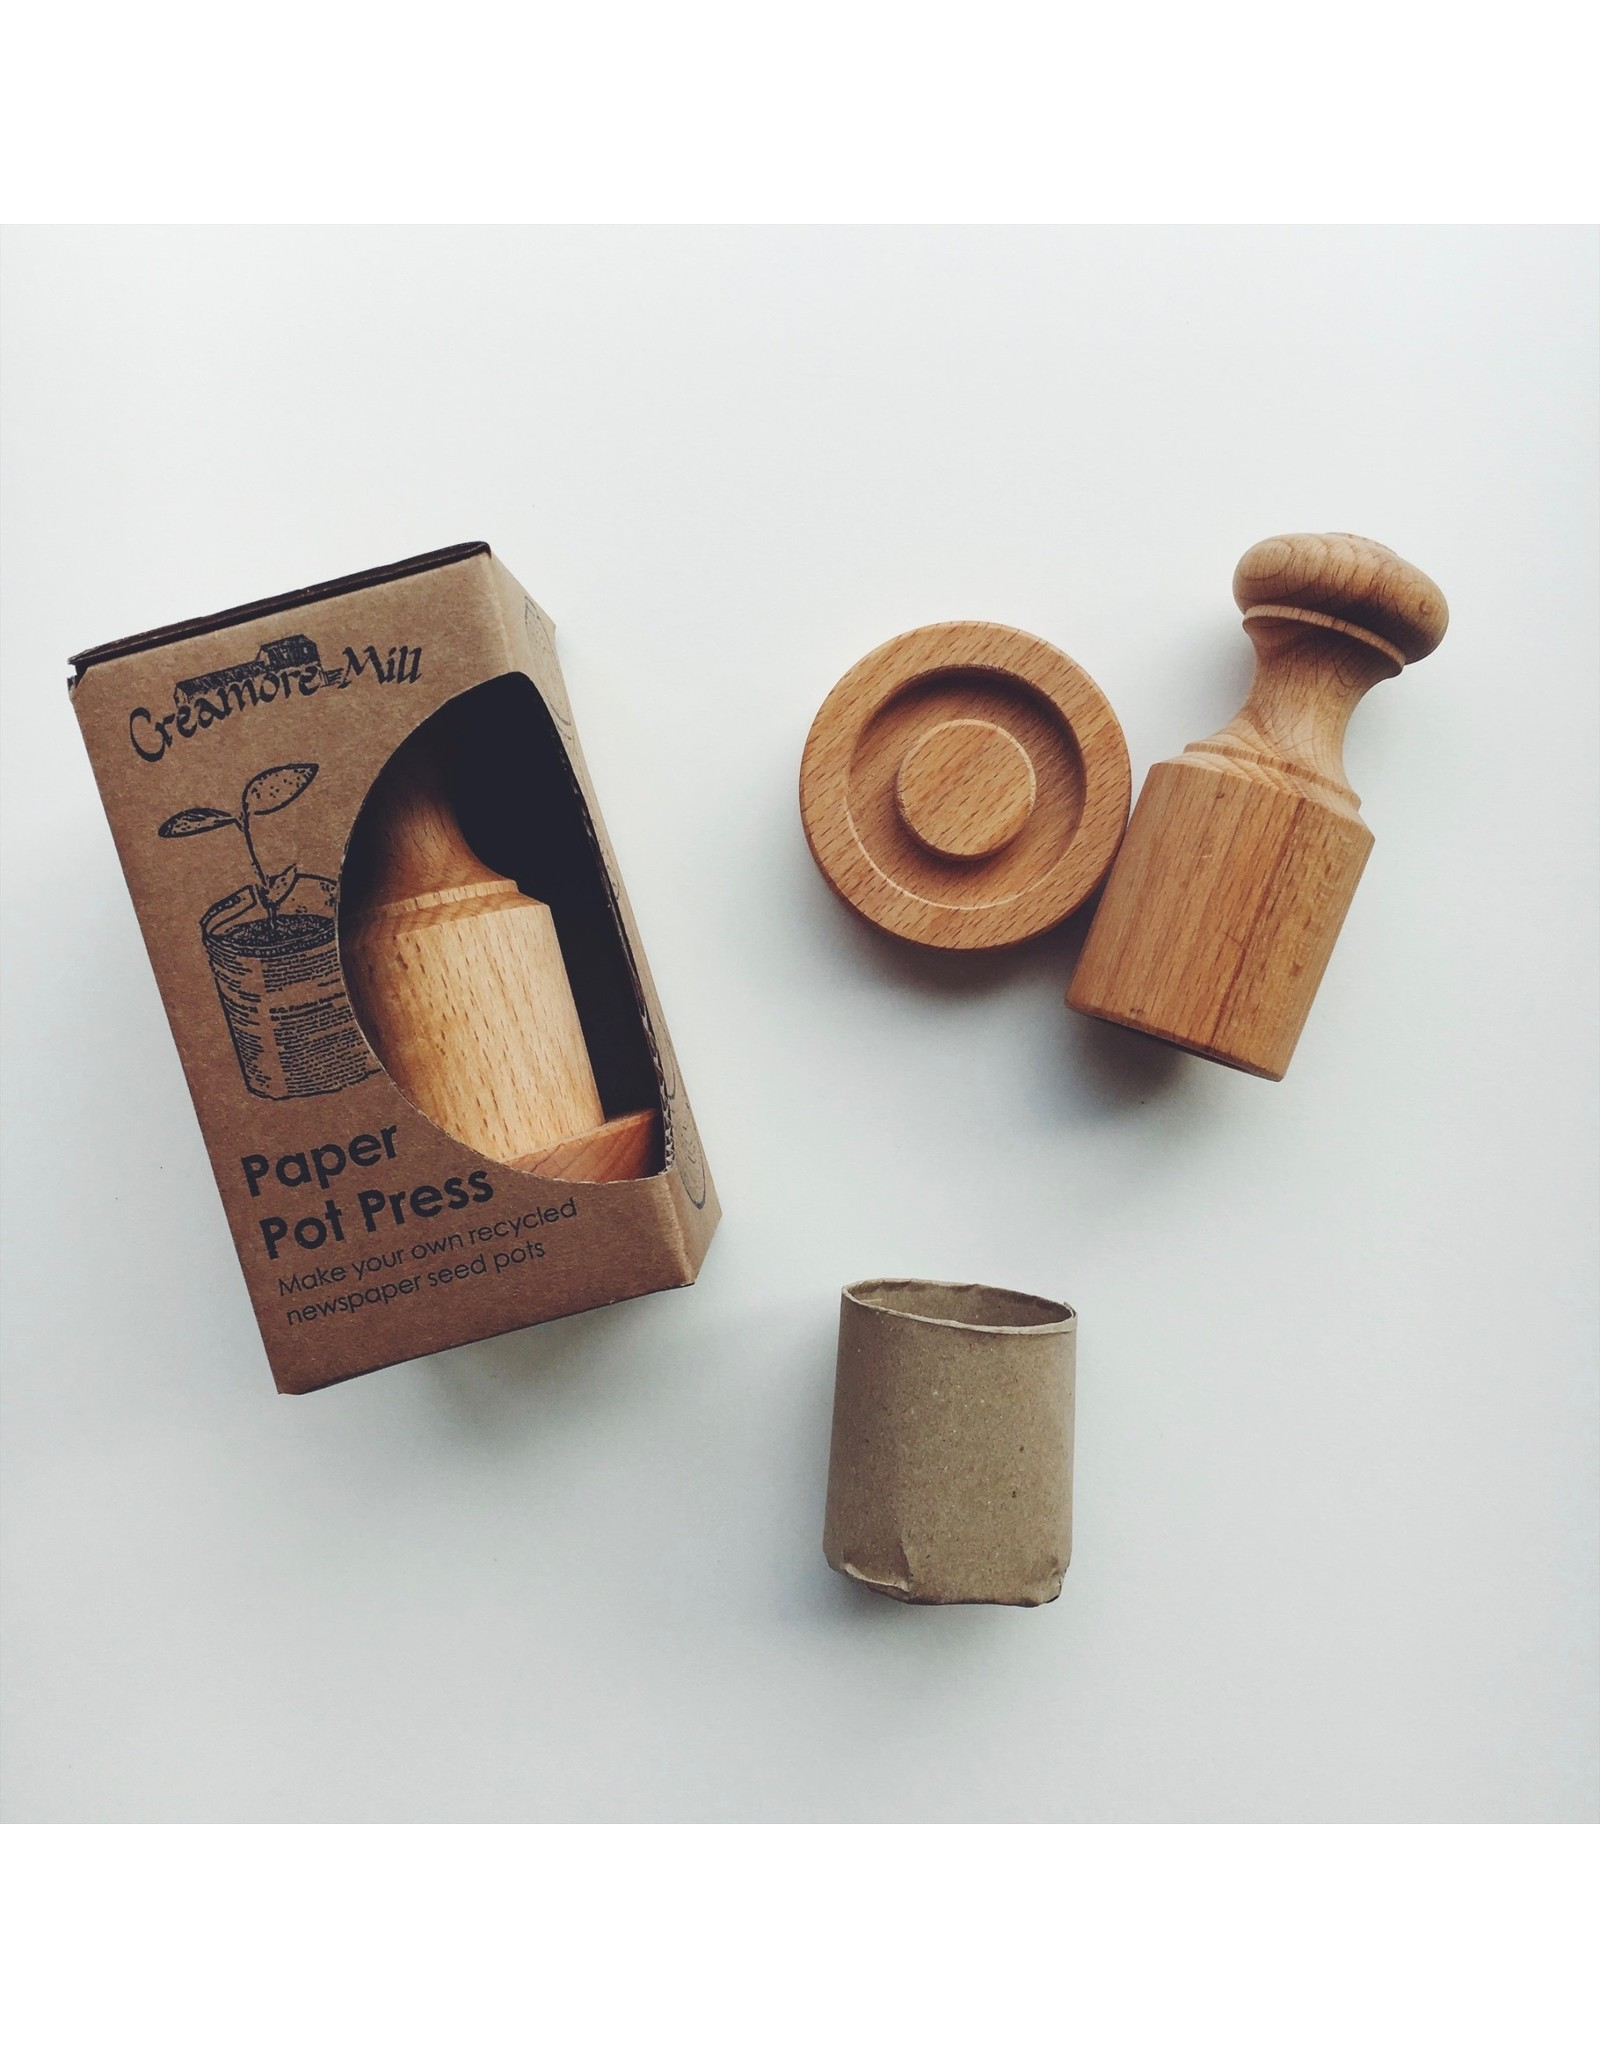 Wooden Paper Seedling Pot Press